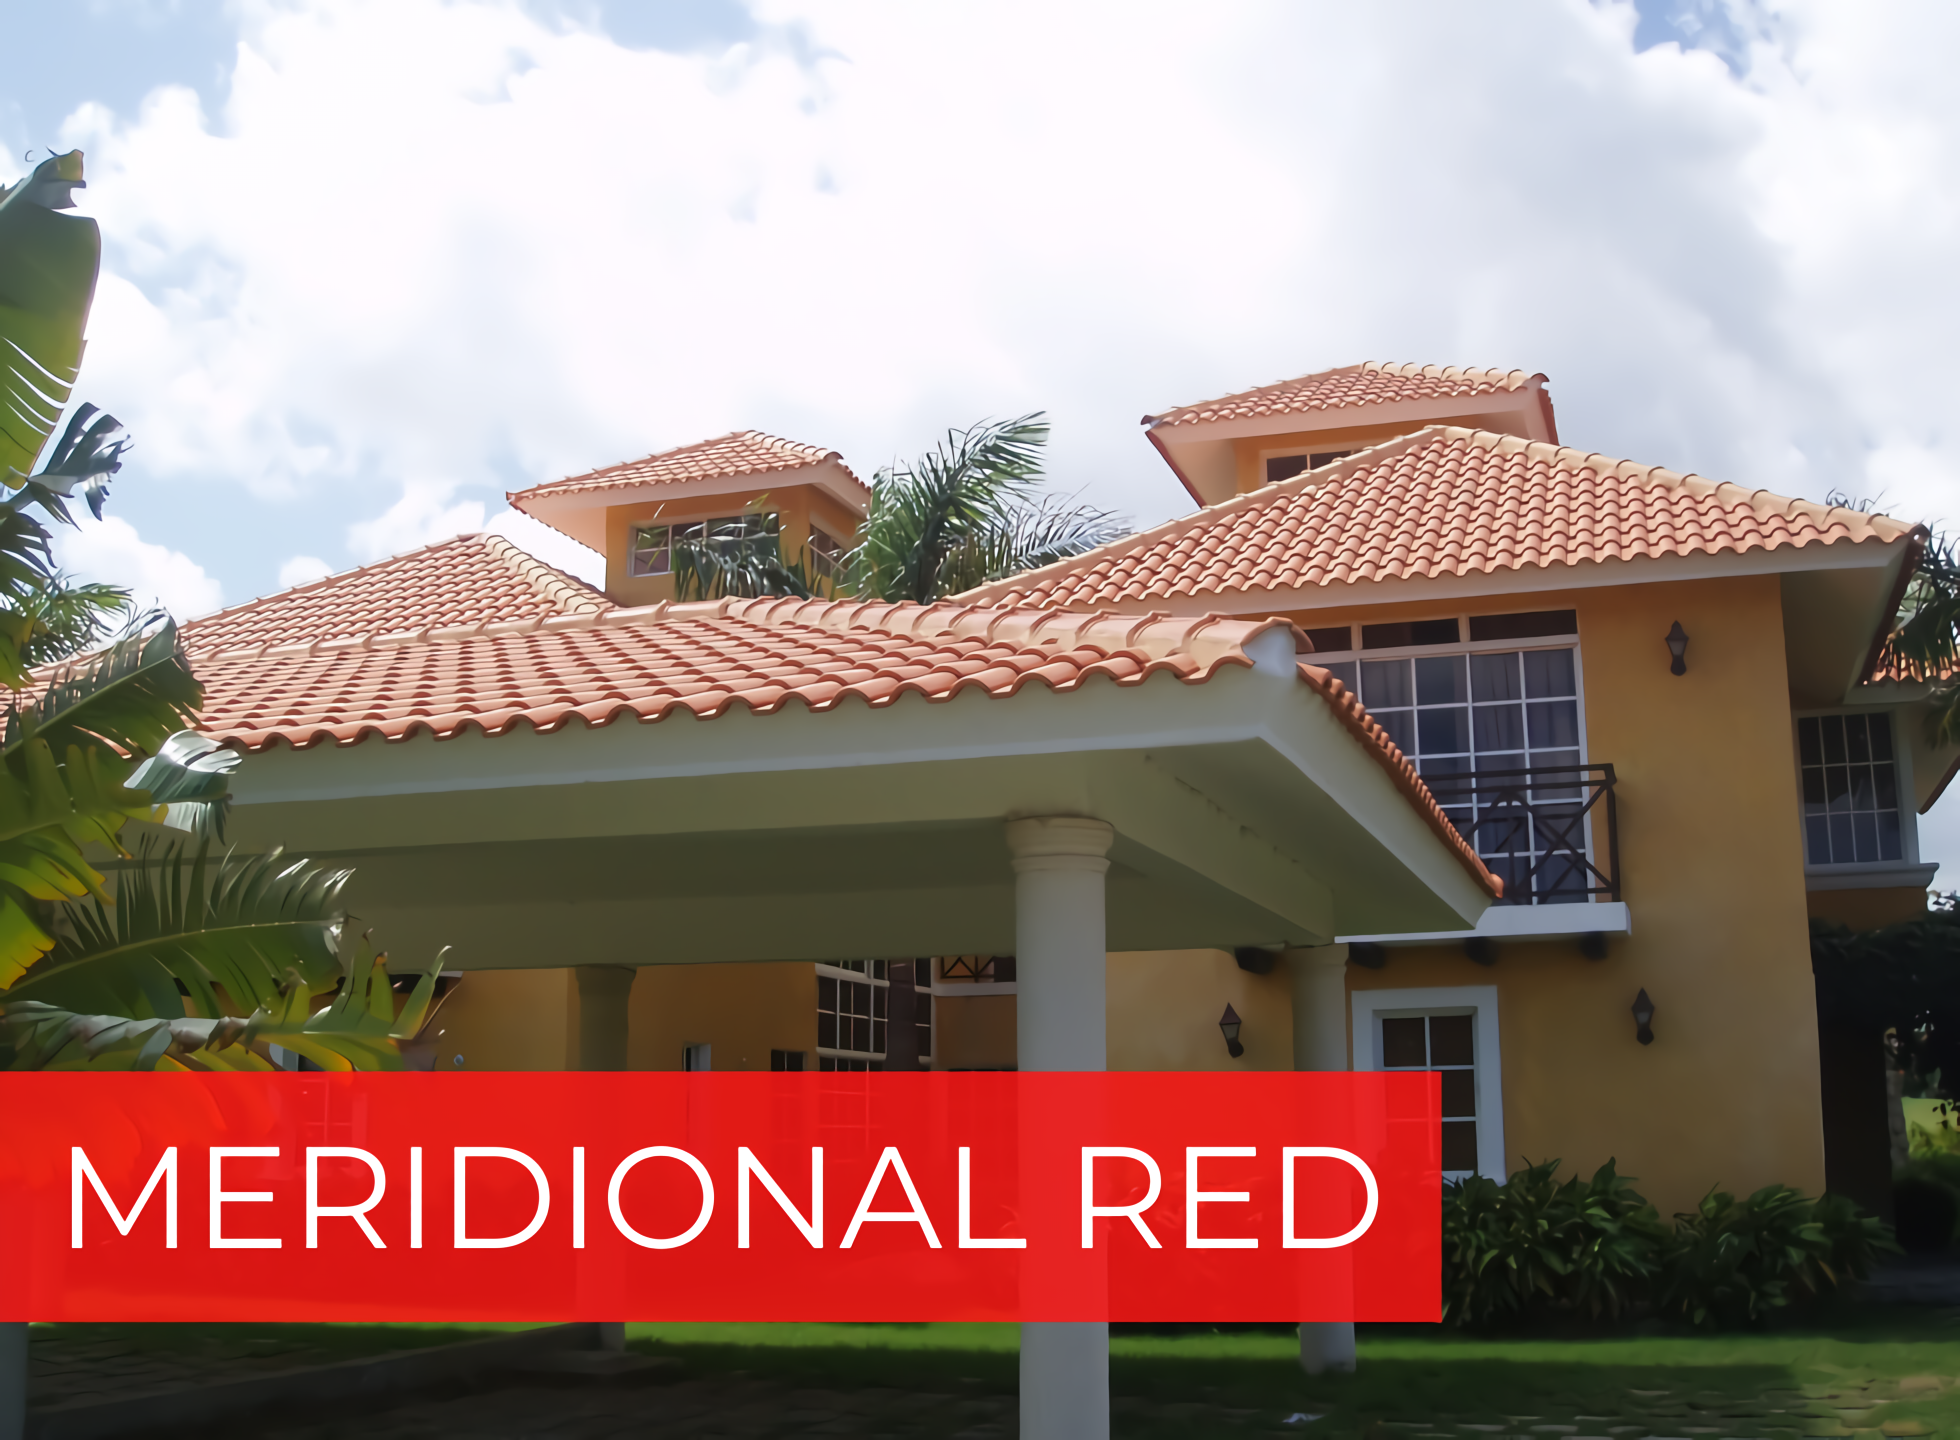 MERIDIONAL RED photo